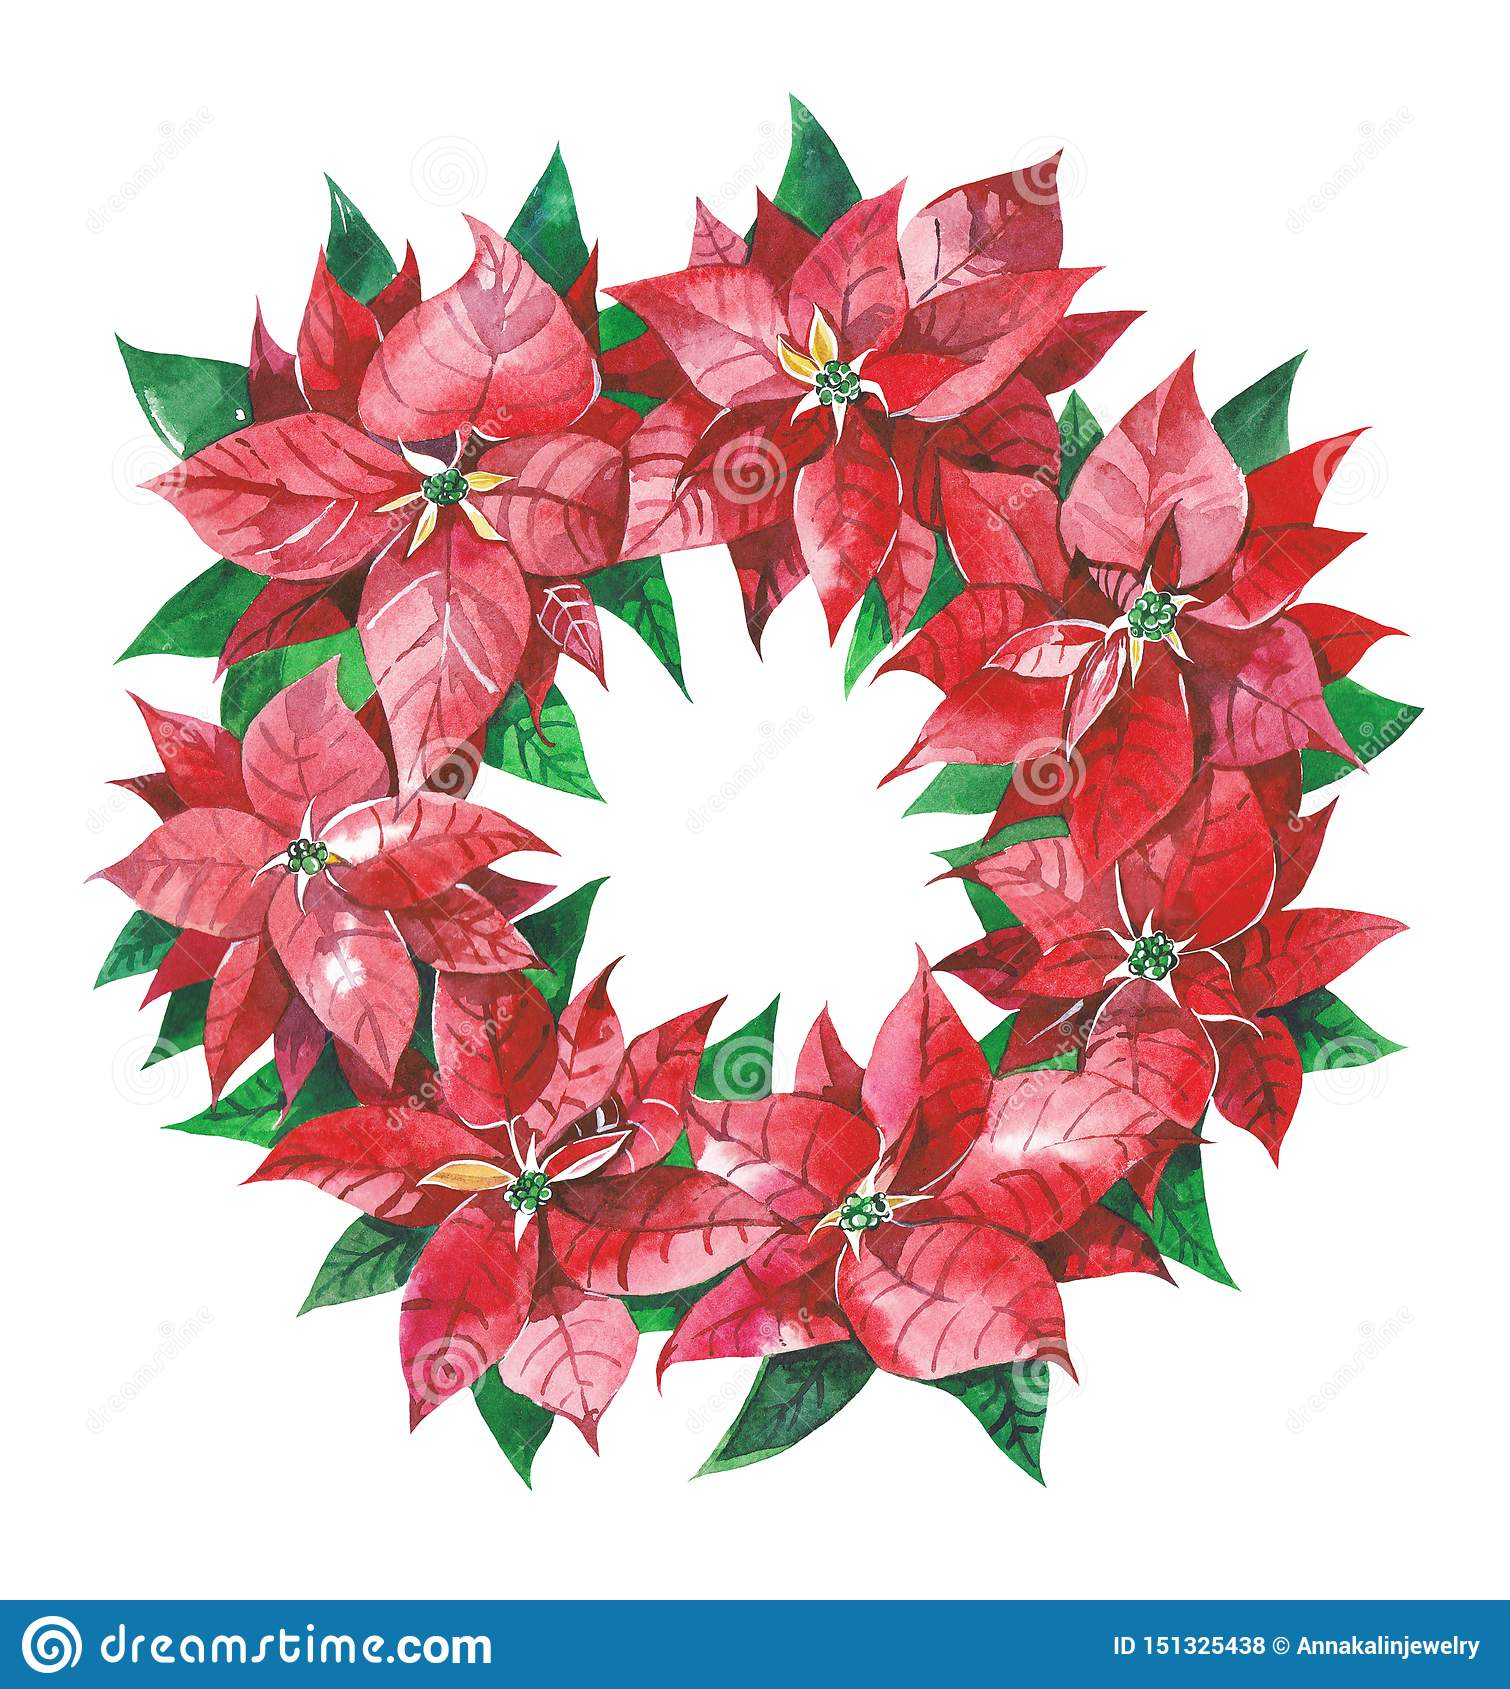 Christmas wreath with red poinsettia flowers.